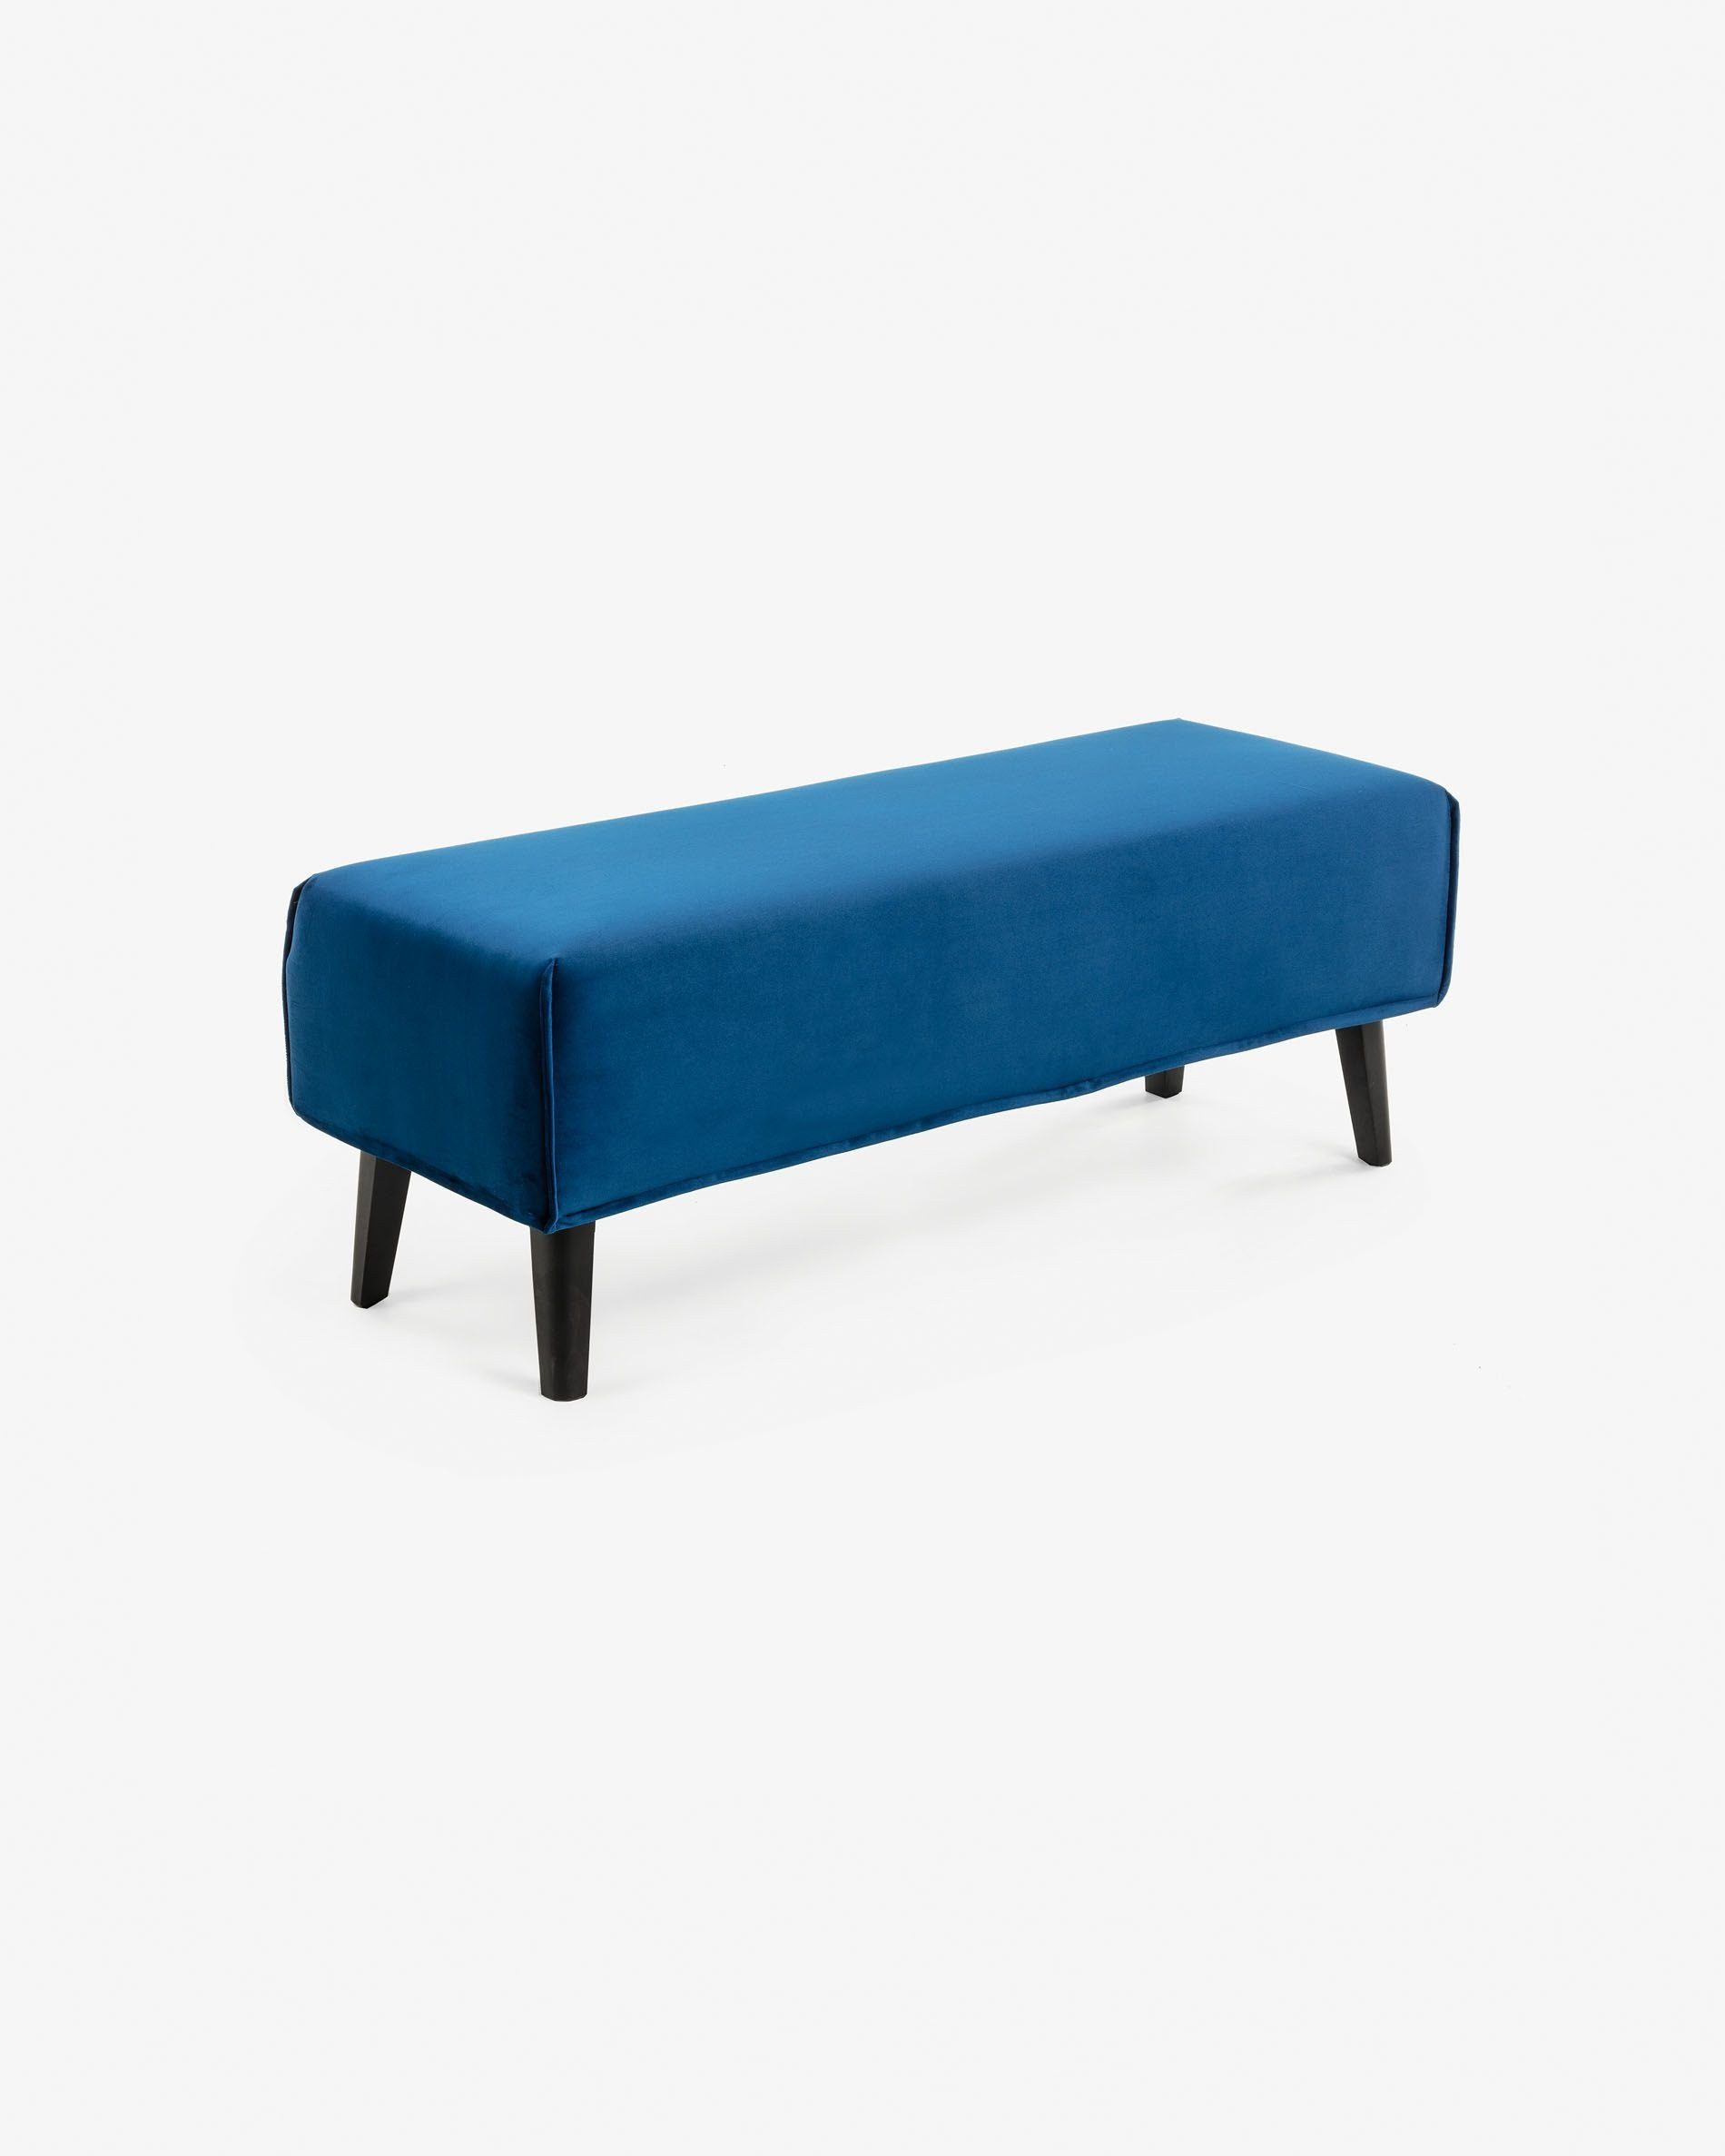 Bedroom Benches for Sale Inspirational Blue Velvet Dyla Bench 111 Cm